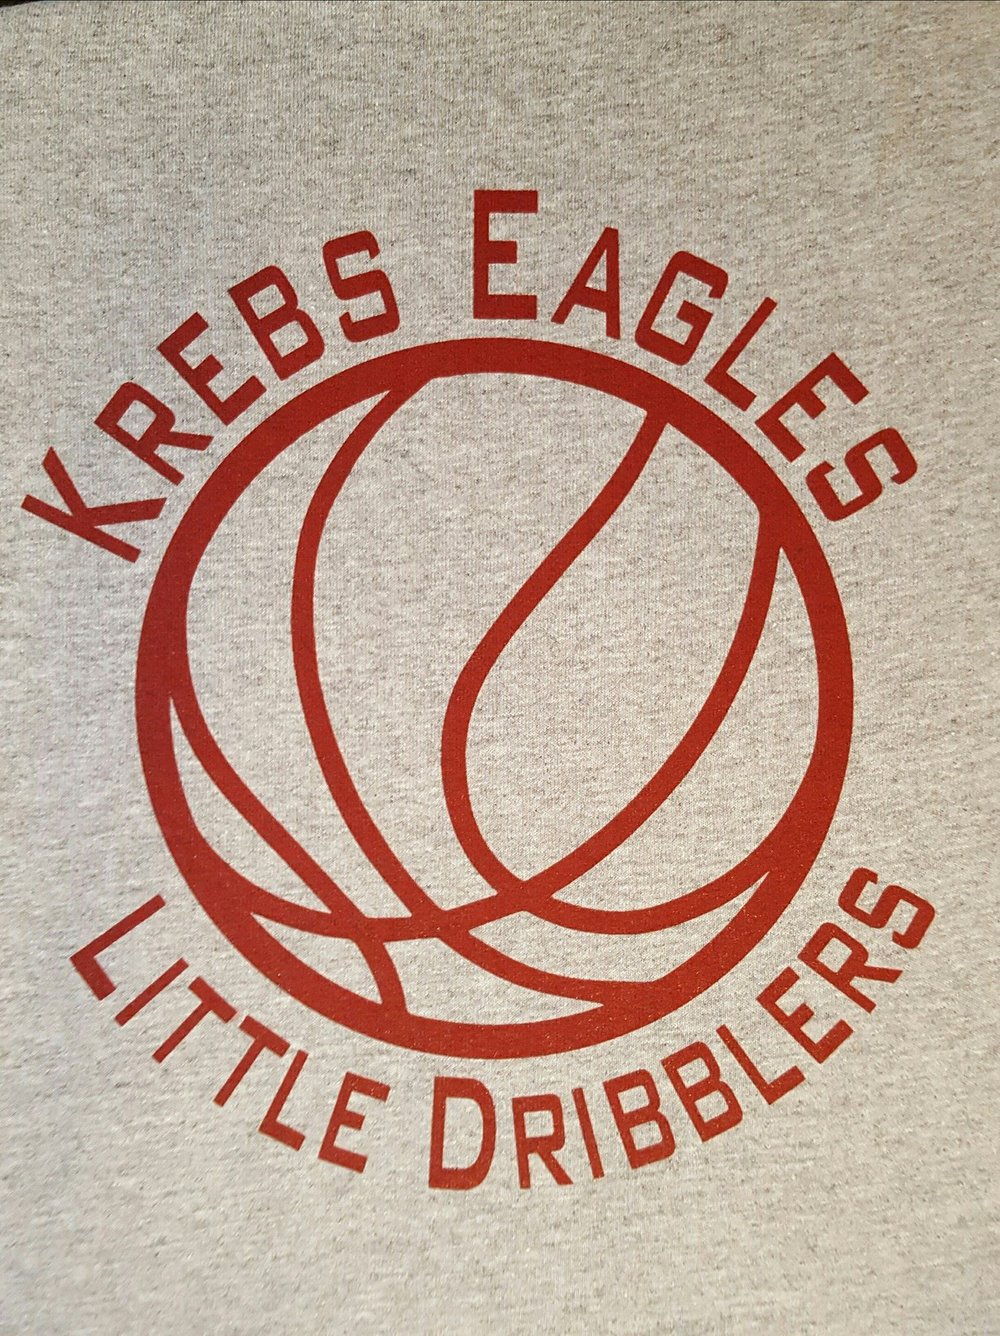 krebs little dribblers.jpg